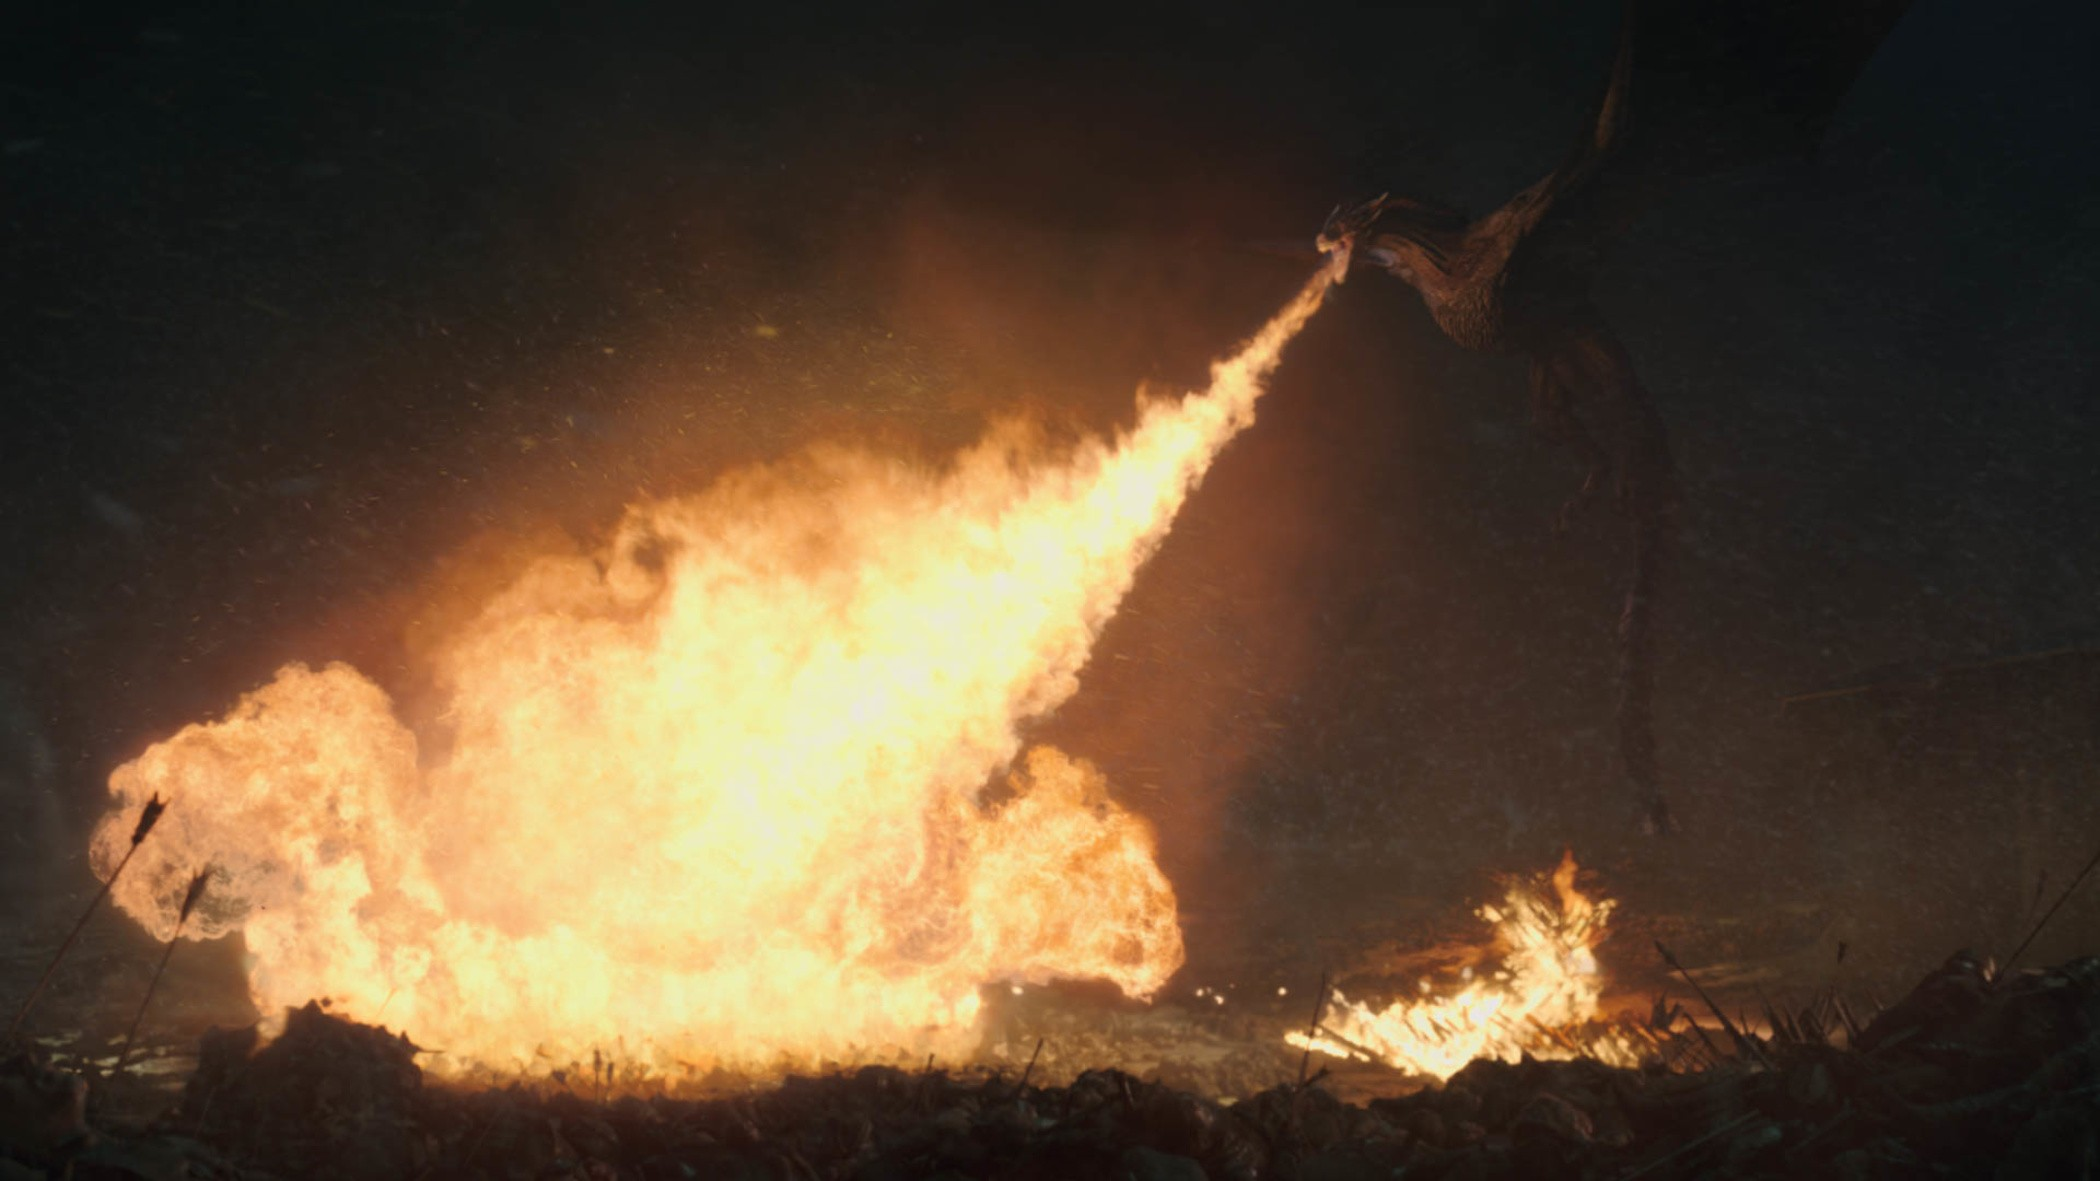 Game of Thrones S08E03: The Long Night - Resumen y comentarios 3